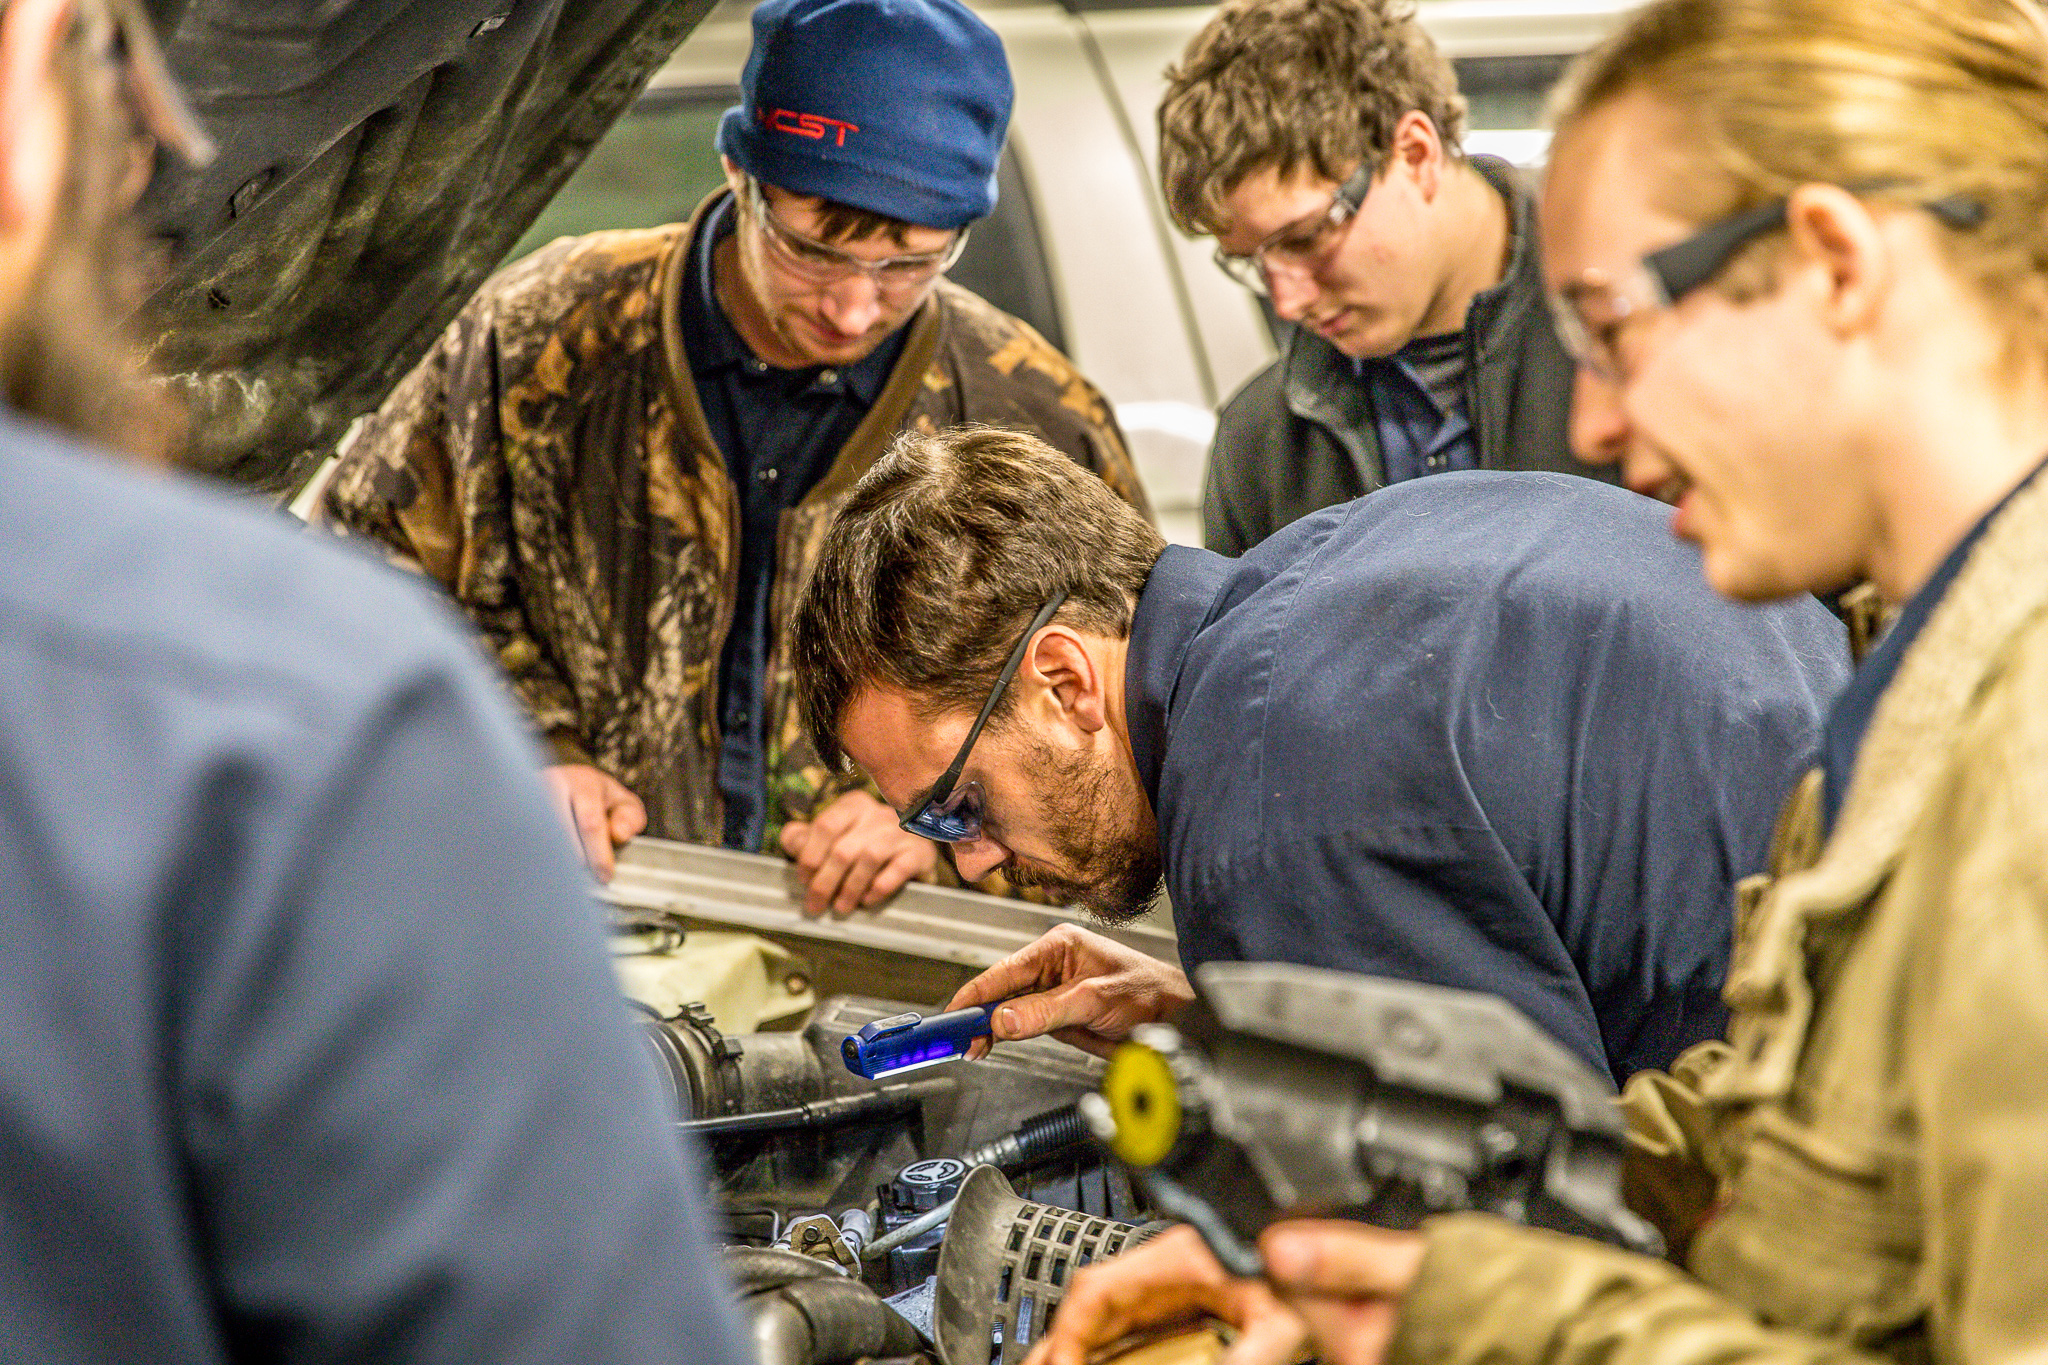 Automotive Technology - The Automotive Technology program is structured to provide the student with the entry level job skills and knowledge necessary to enter the work market as an automotive technician. Graduates are prepared to maintain, diagnose, and service the vehicles found in the automotive industry.